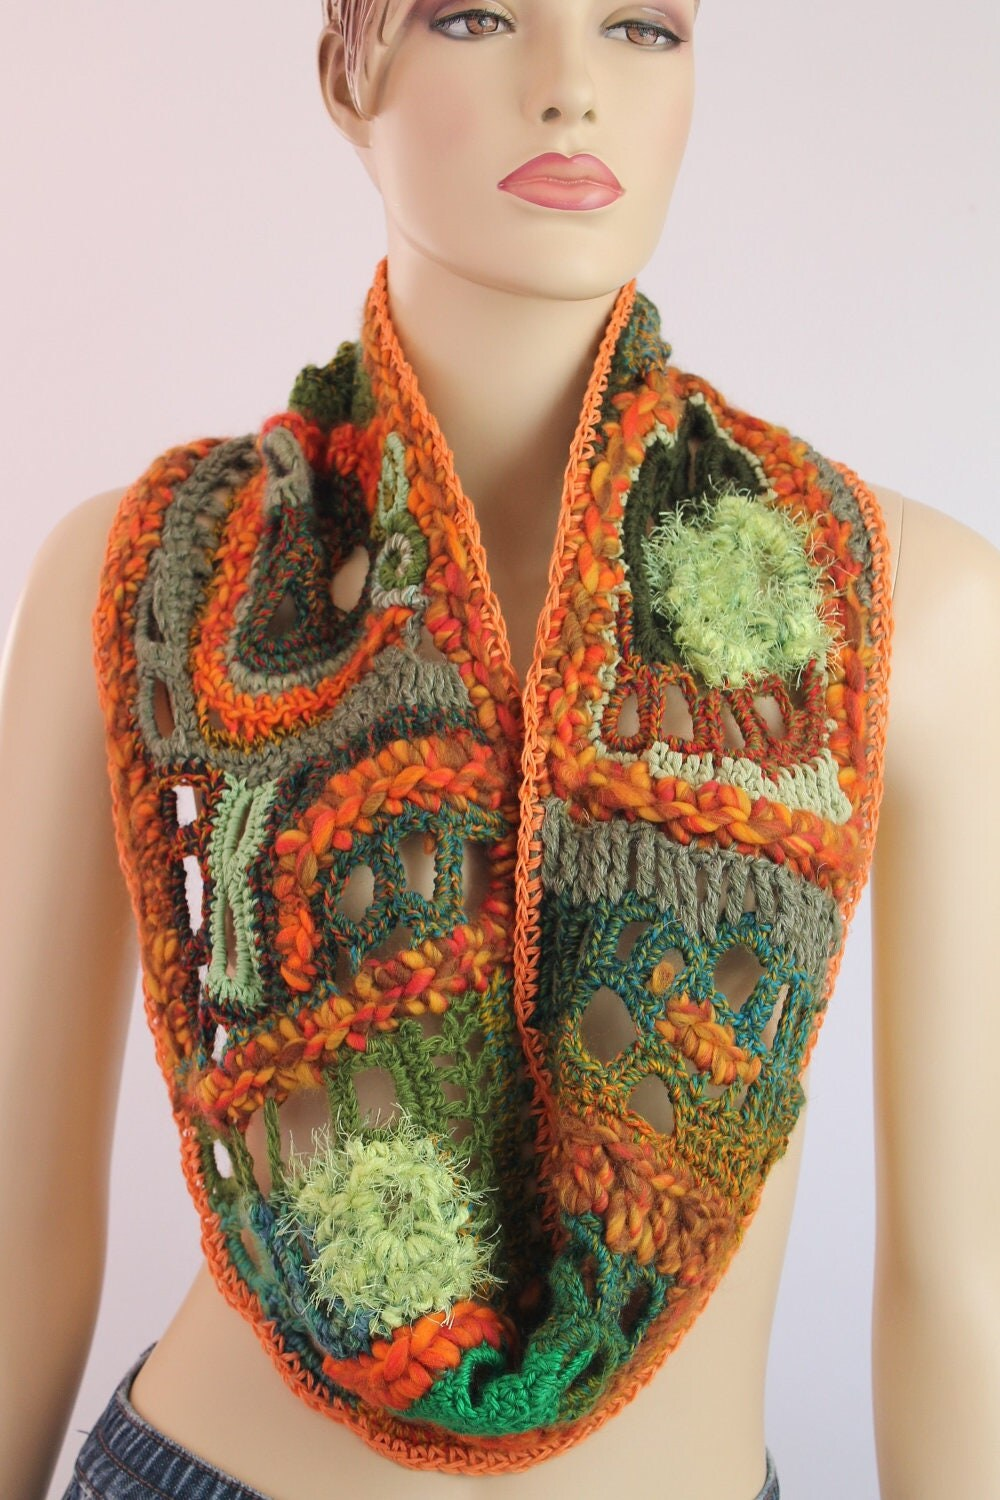 Crochet Chunky Multicolor Scarf  Cowl  Neck Warmer  Freeform Cowl Neck Scarves Crochet